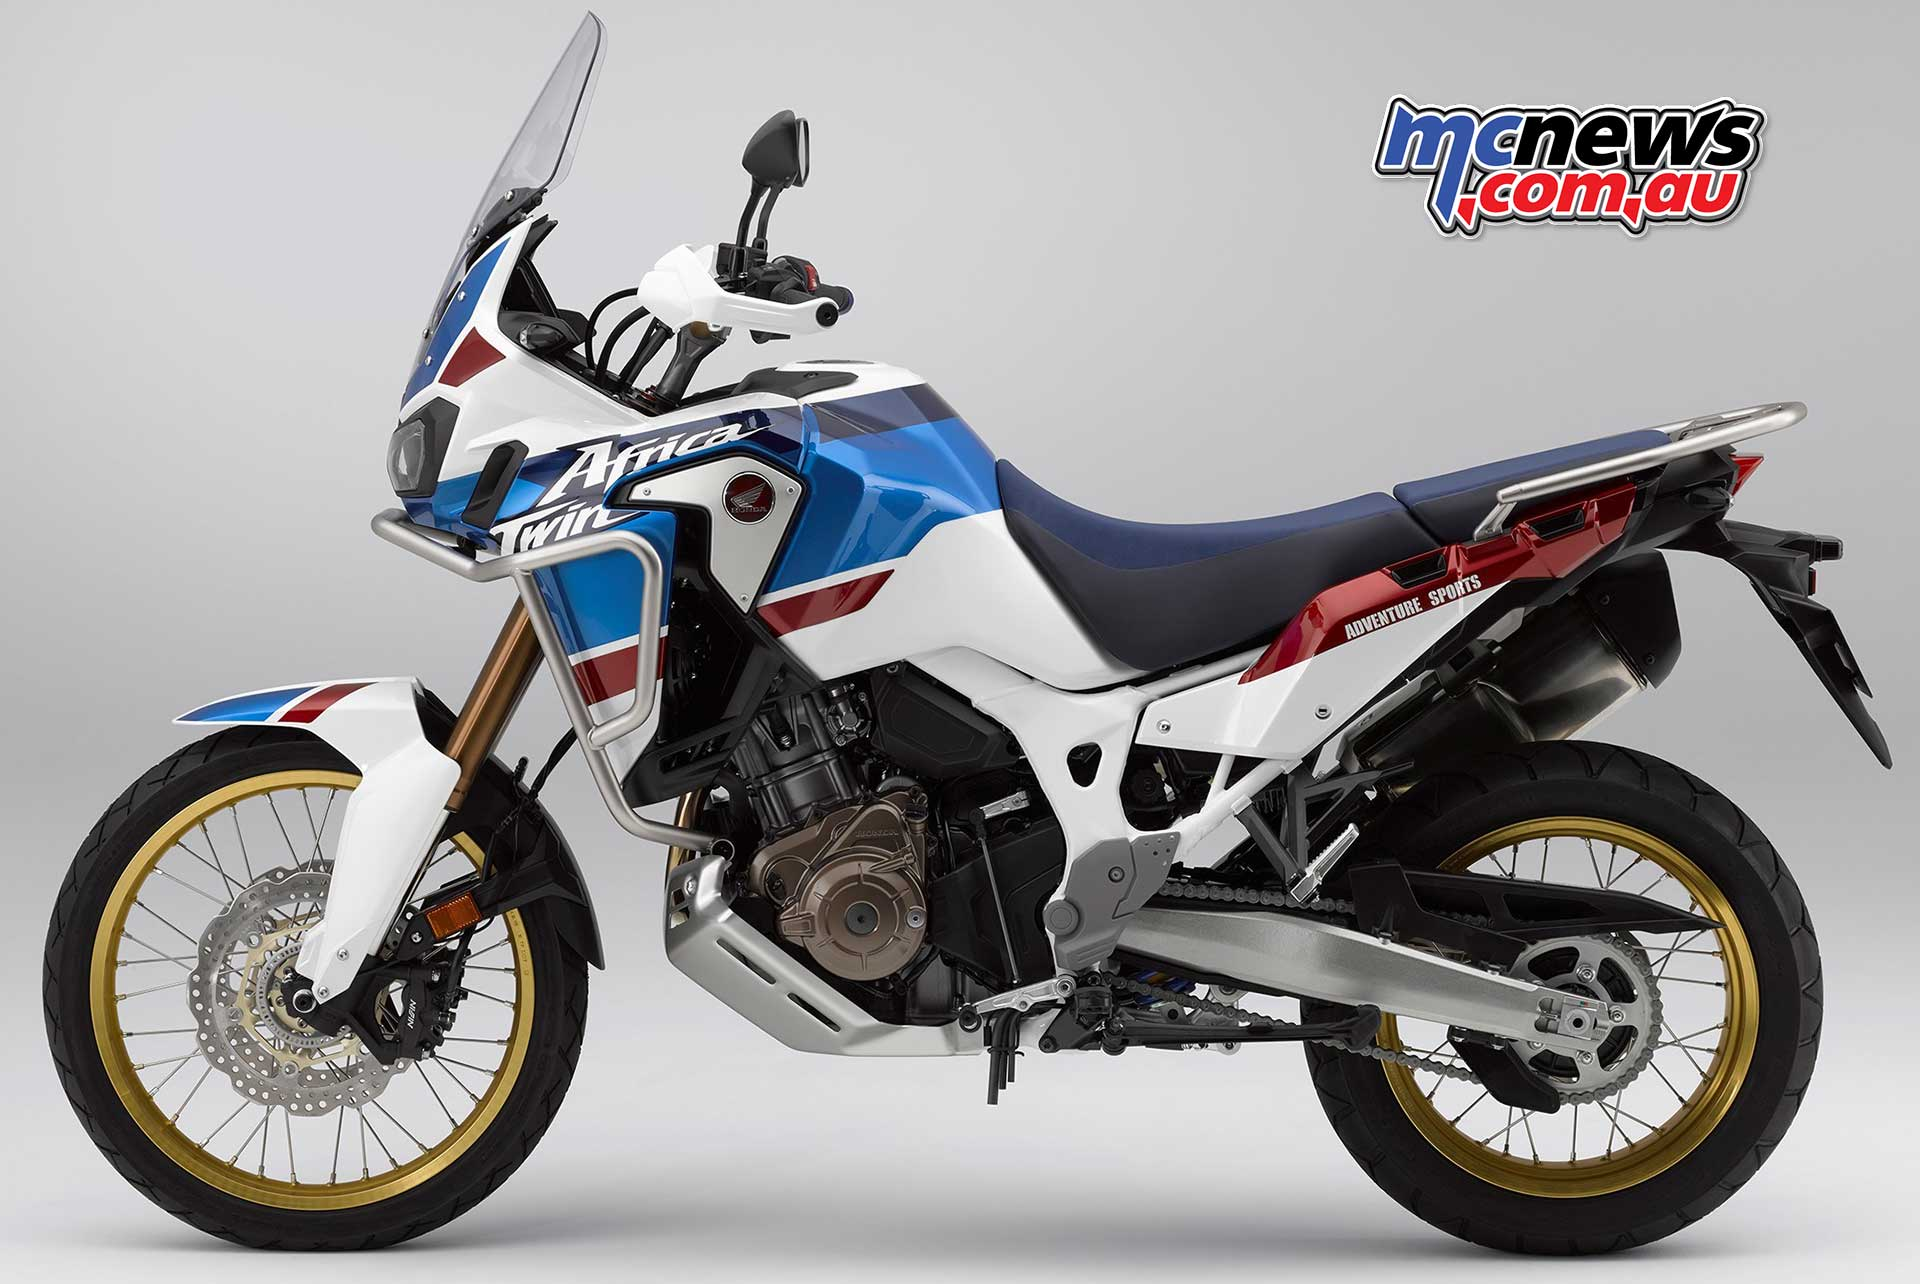 2019 africa twin adventure sports now in dealers mcnews. Black Bedroom Furniture Sets. Home Design Ideas